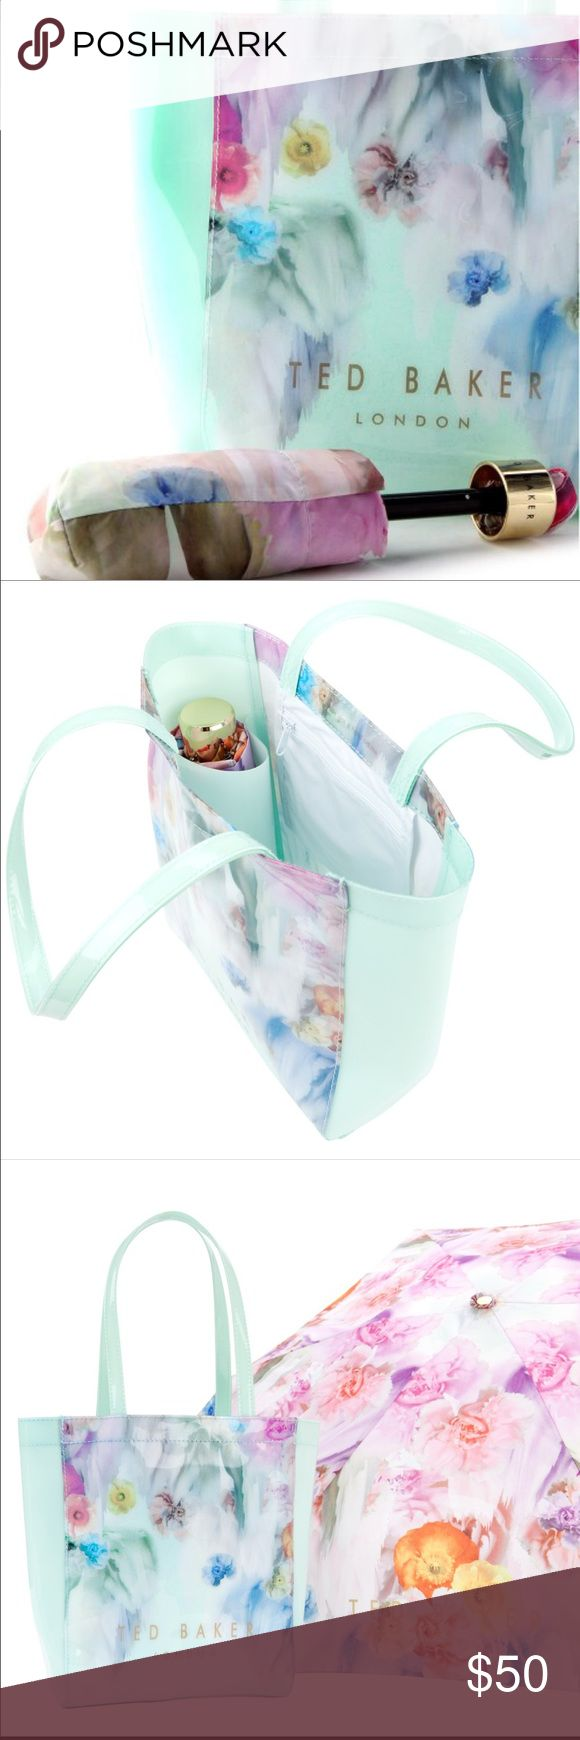 Ted Baker pale mint green tote bag with umbrella Such a cute little bag with zippered pocket and little pocket from umbrella. Brand new! Would make an excellent gift  Ted Baker Bags Totes